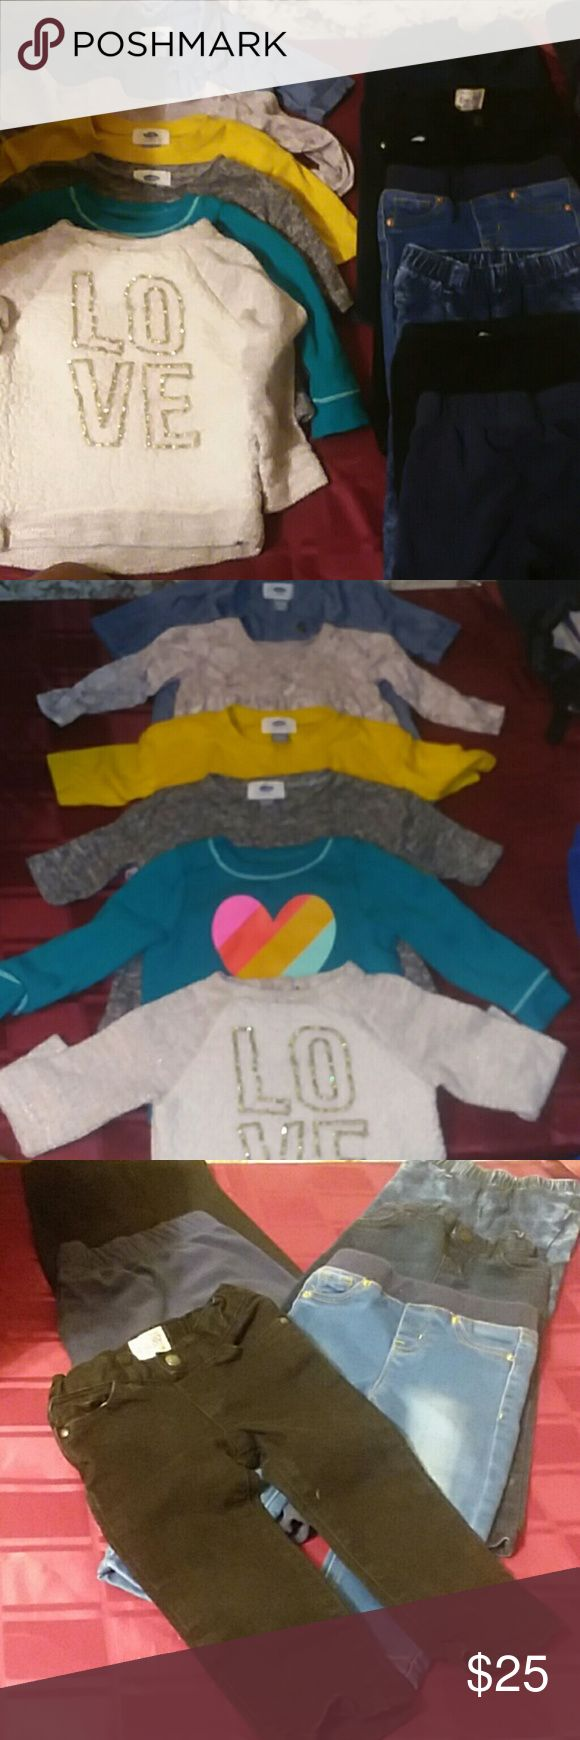 18-24 month Bundle 2 Old Navy 18-24 month tunics  (demin 3/4 sleeve and gray floral long sleeve) 2 Old Nacy 18-24 month 3/4 sweaters  (yellow and gray) 2 Cat and Jack Sweat Shirts  (teal and cream)  2 Children's Place  18-24 month Jeans  (dark blue and black) 2 Cat and Jack 18 month demin jeggings ( blue) 1 Cat and Jack 18 month sweat pant  (black) 1 Carters Fleece 18 month sweat pant  (navy blue) Old Navy Shirts & Tops